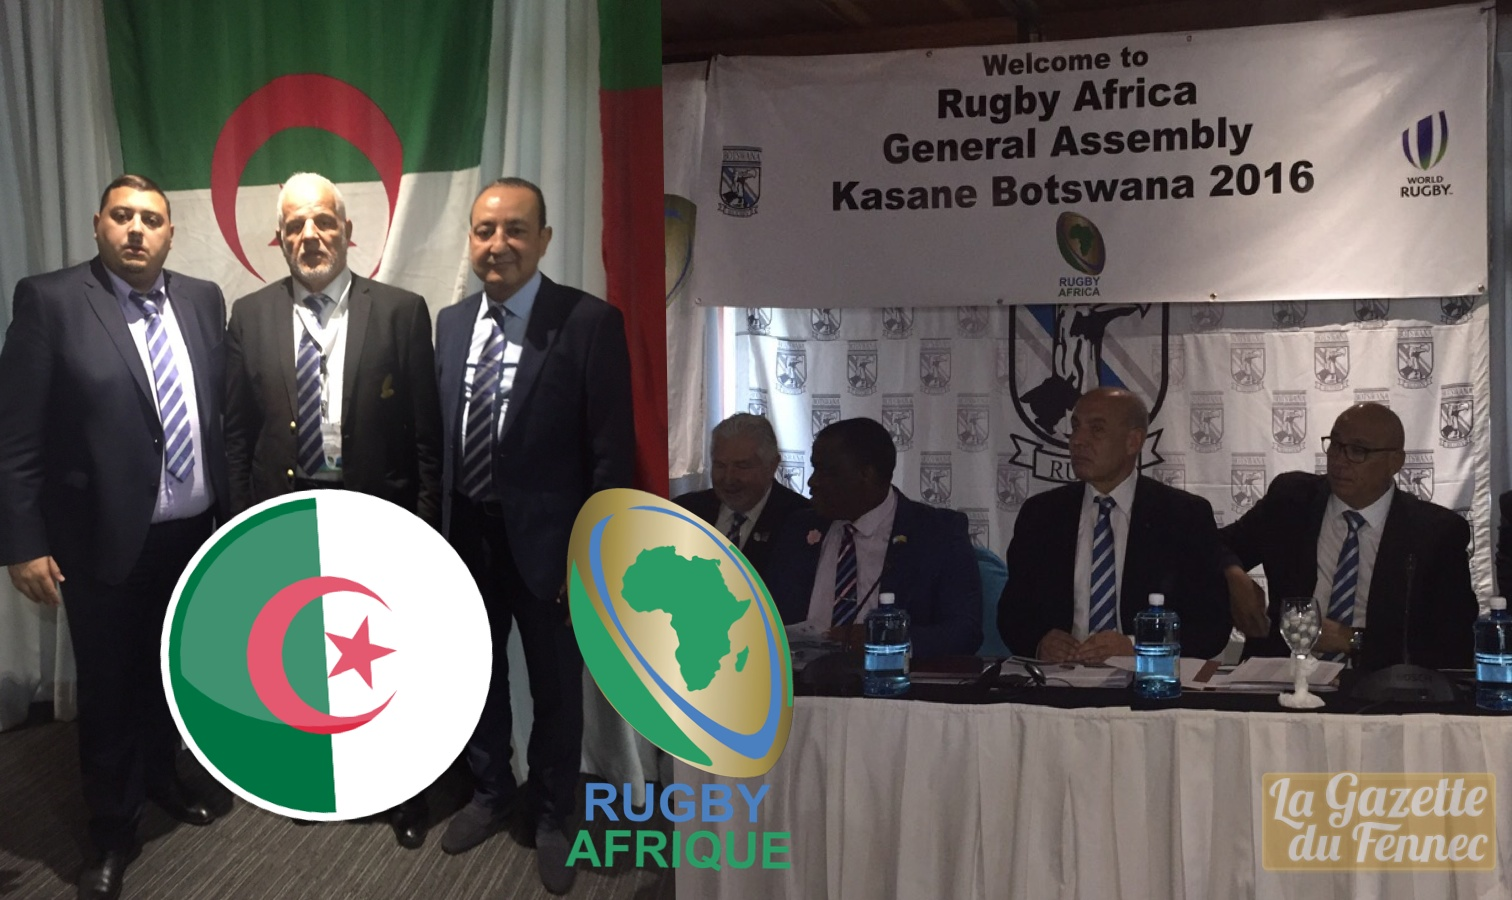 rugby-afrique-adhesion-algerie